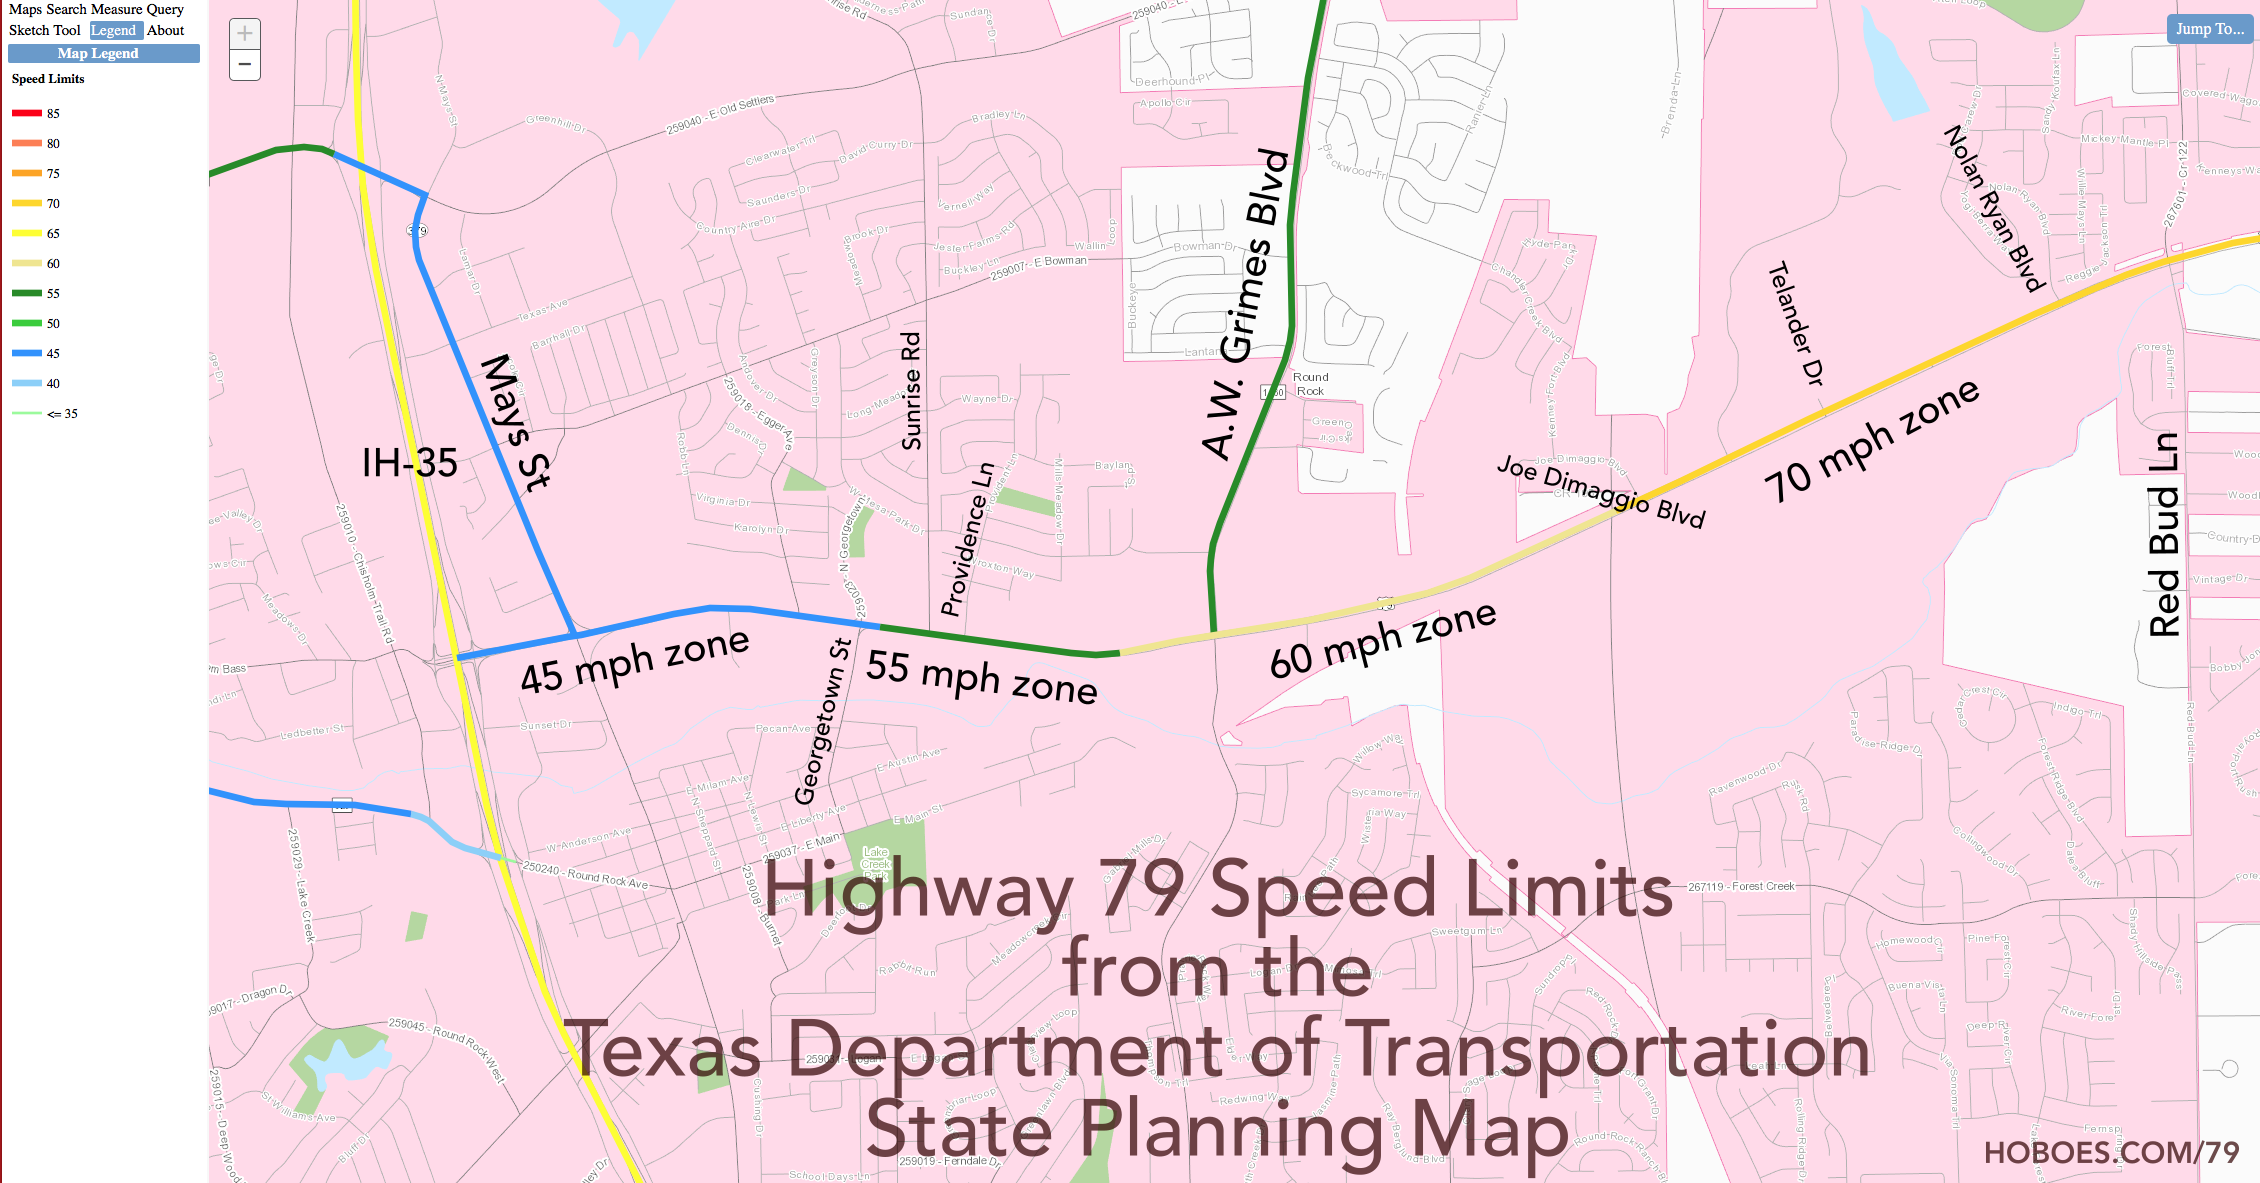 Texas Planning Map, Round Rock Highway 79 Speed Limits